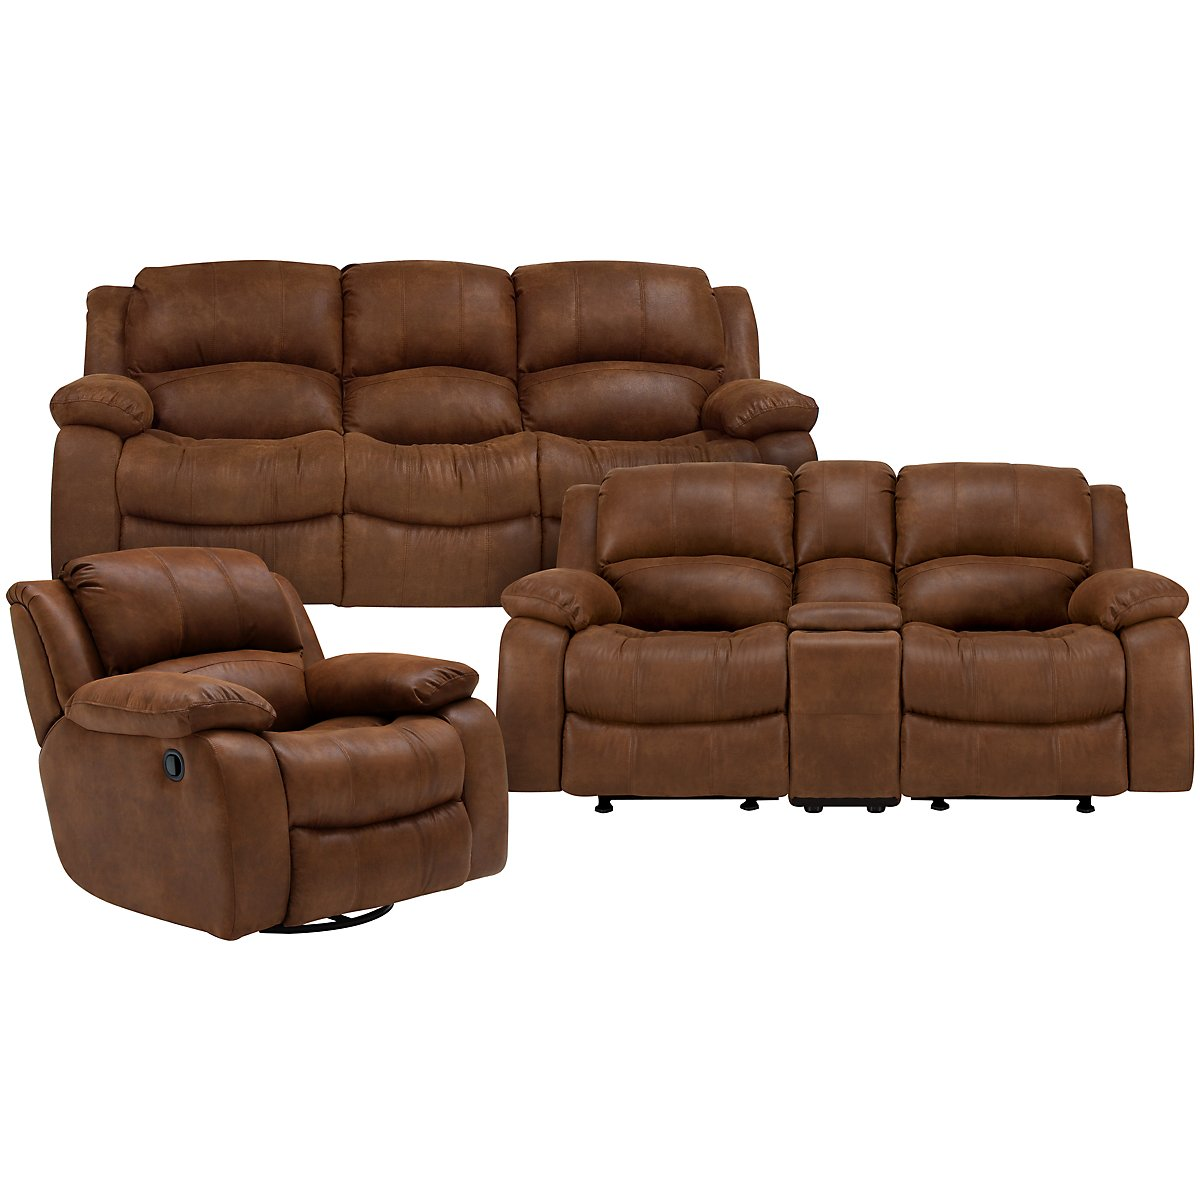 Tyler2 Medium Brown Microfiber Power Reclining Living Room